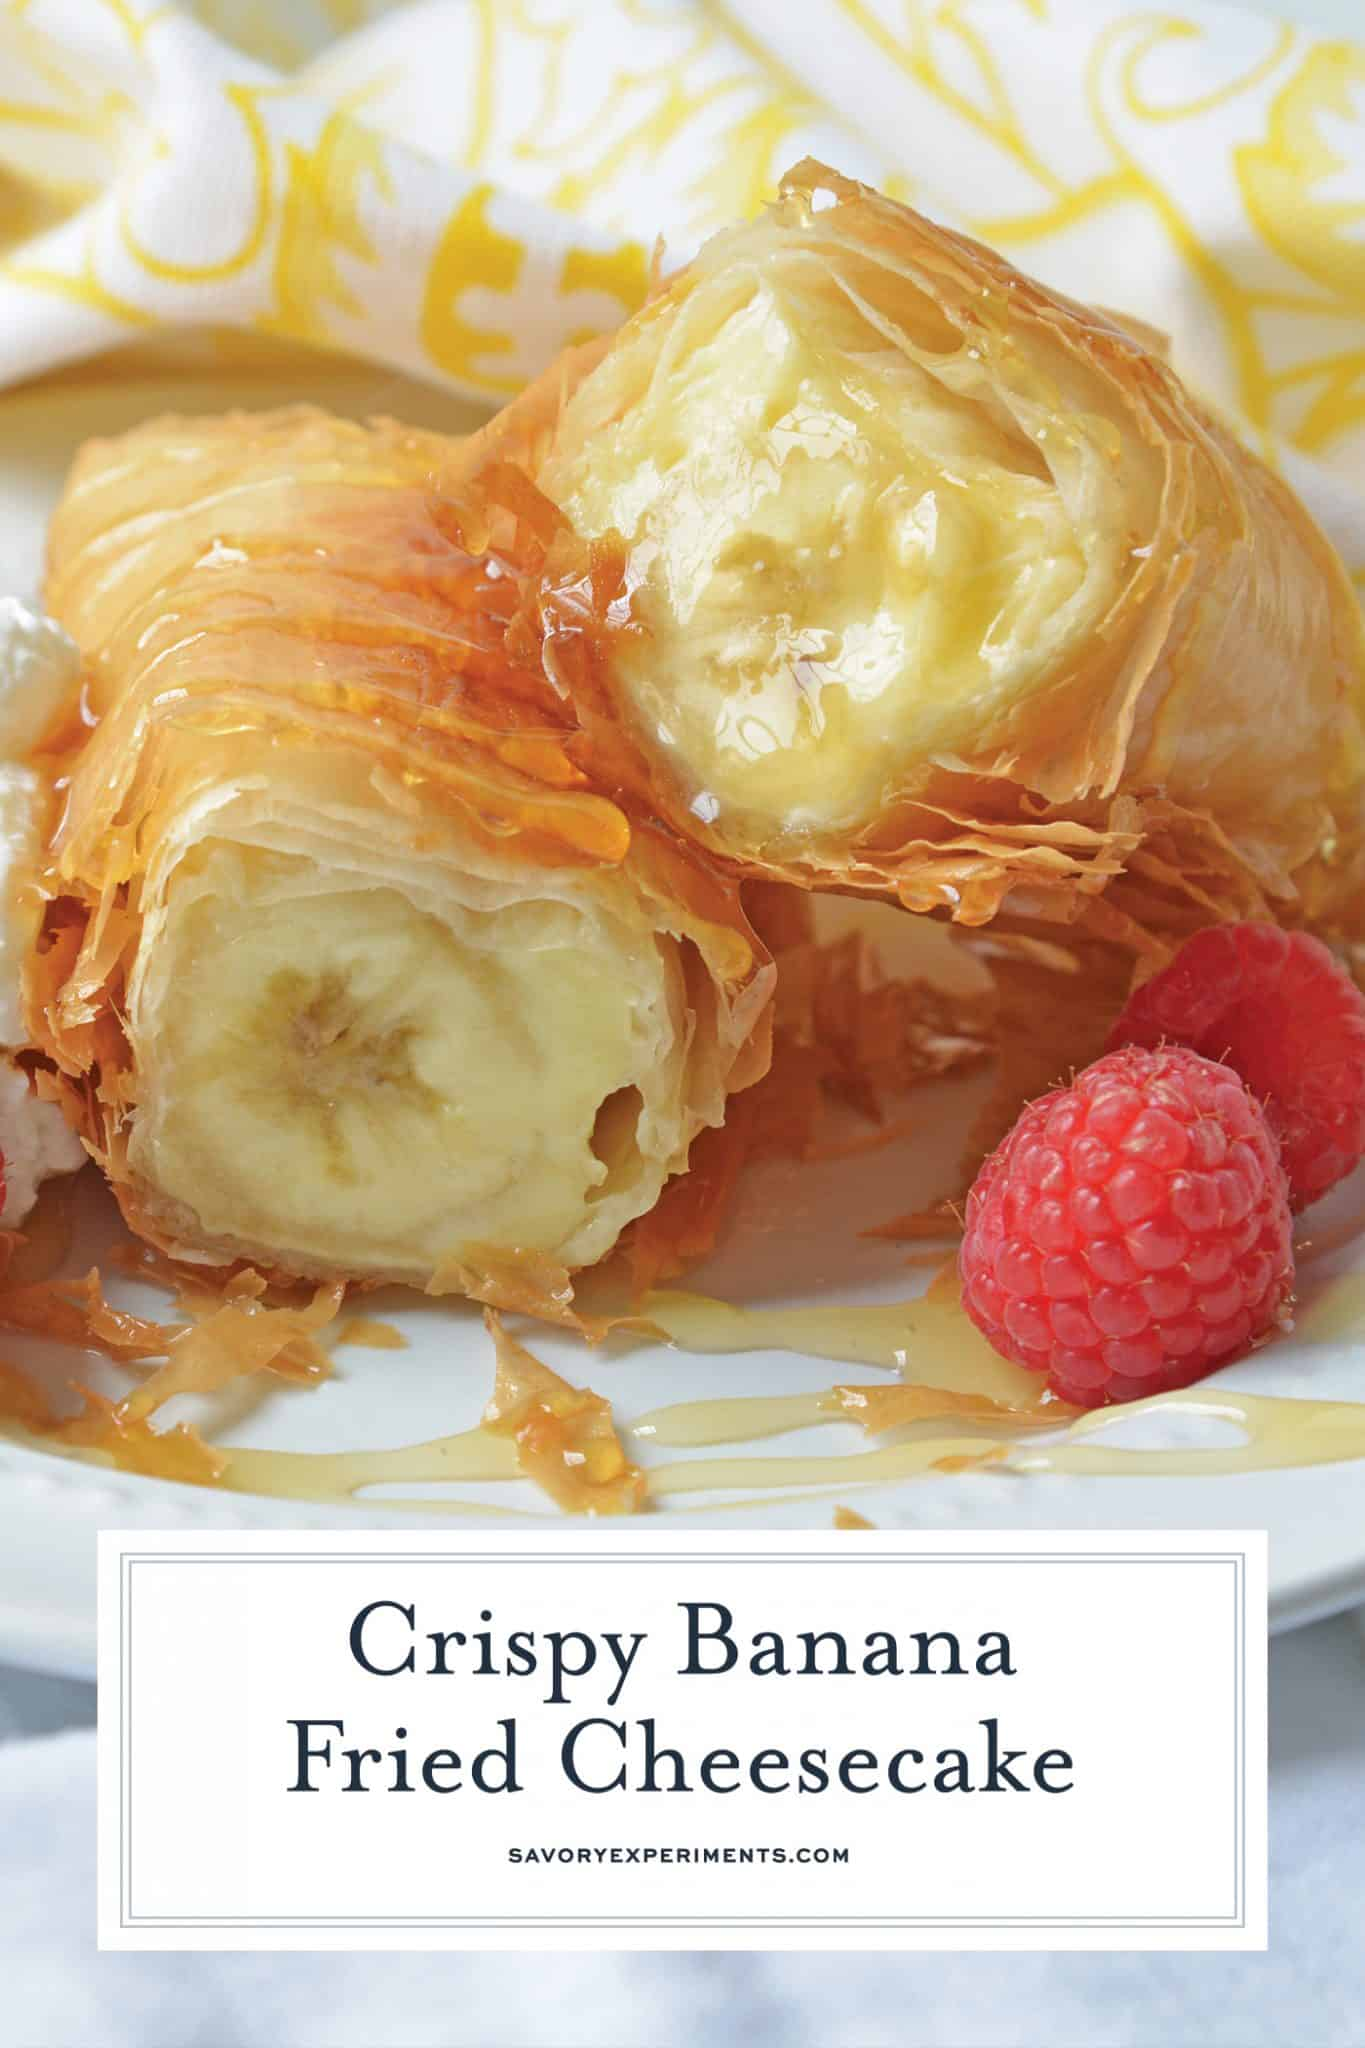 This Banana Fried Cheesecake recipe will become one of your all time favorite desserts! They are fried golden brown to perfection and drizzled with honey. #friedcheesecake #bananaspringrolls www.savoryexperiments.com